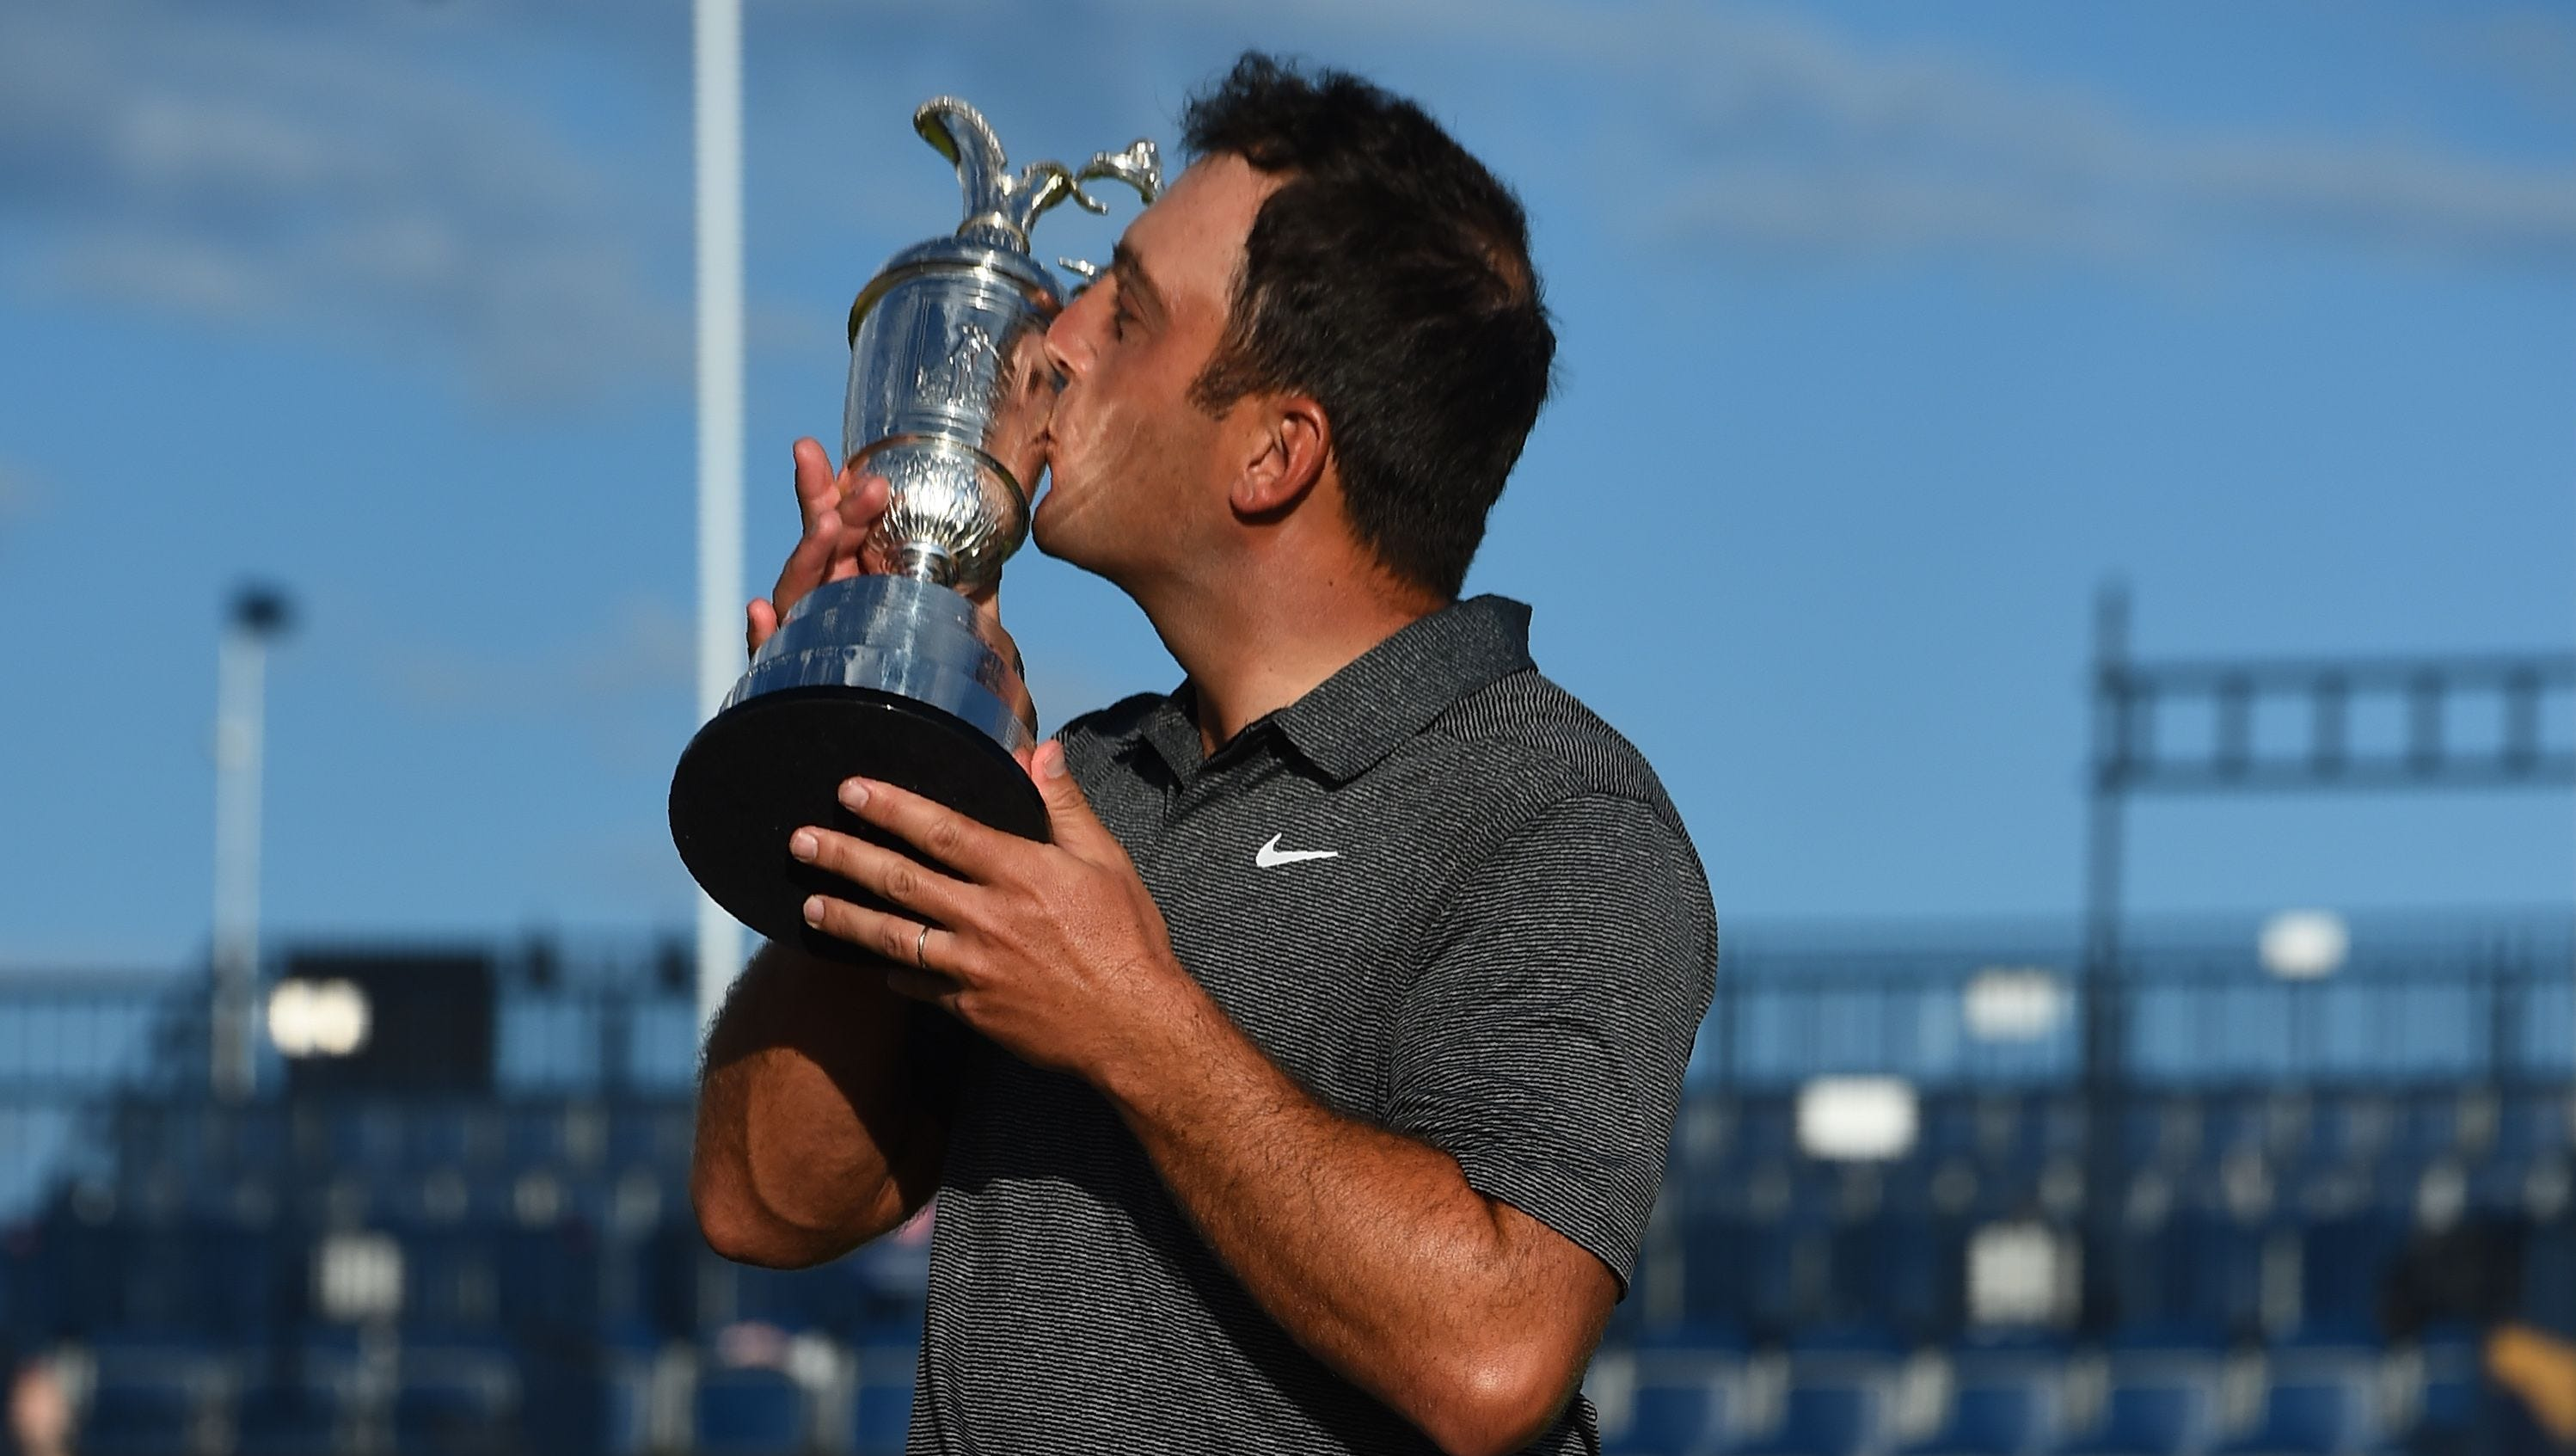 francesco molinari wins british open as tiger woods makes